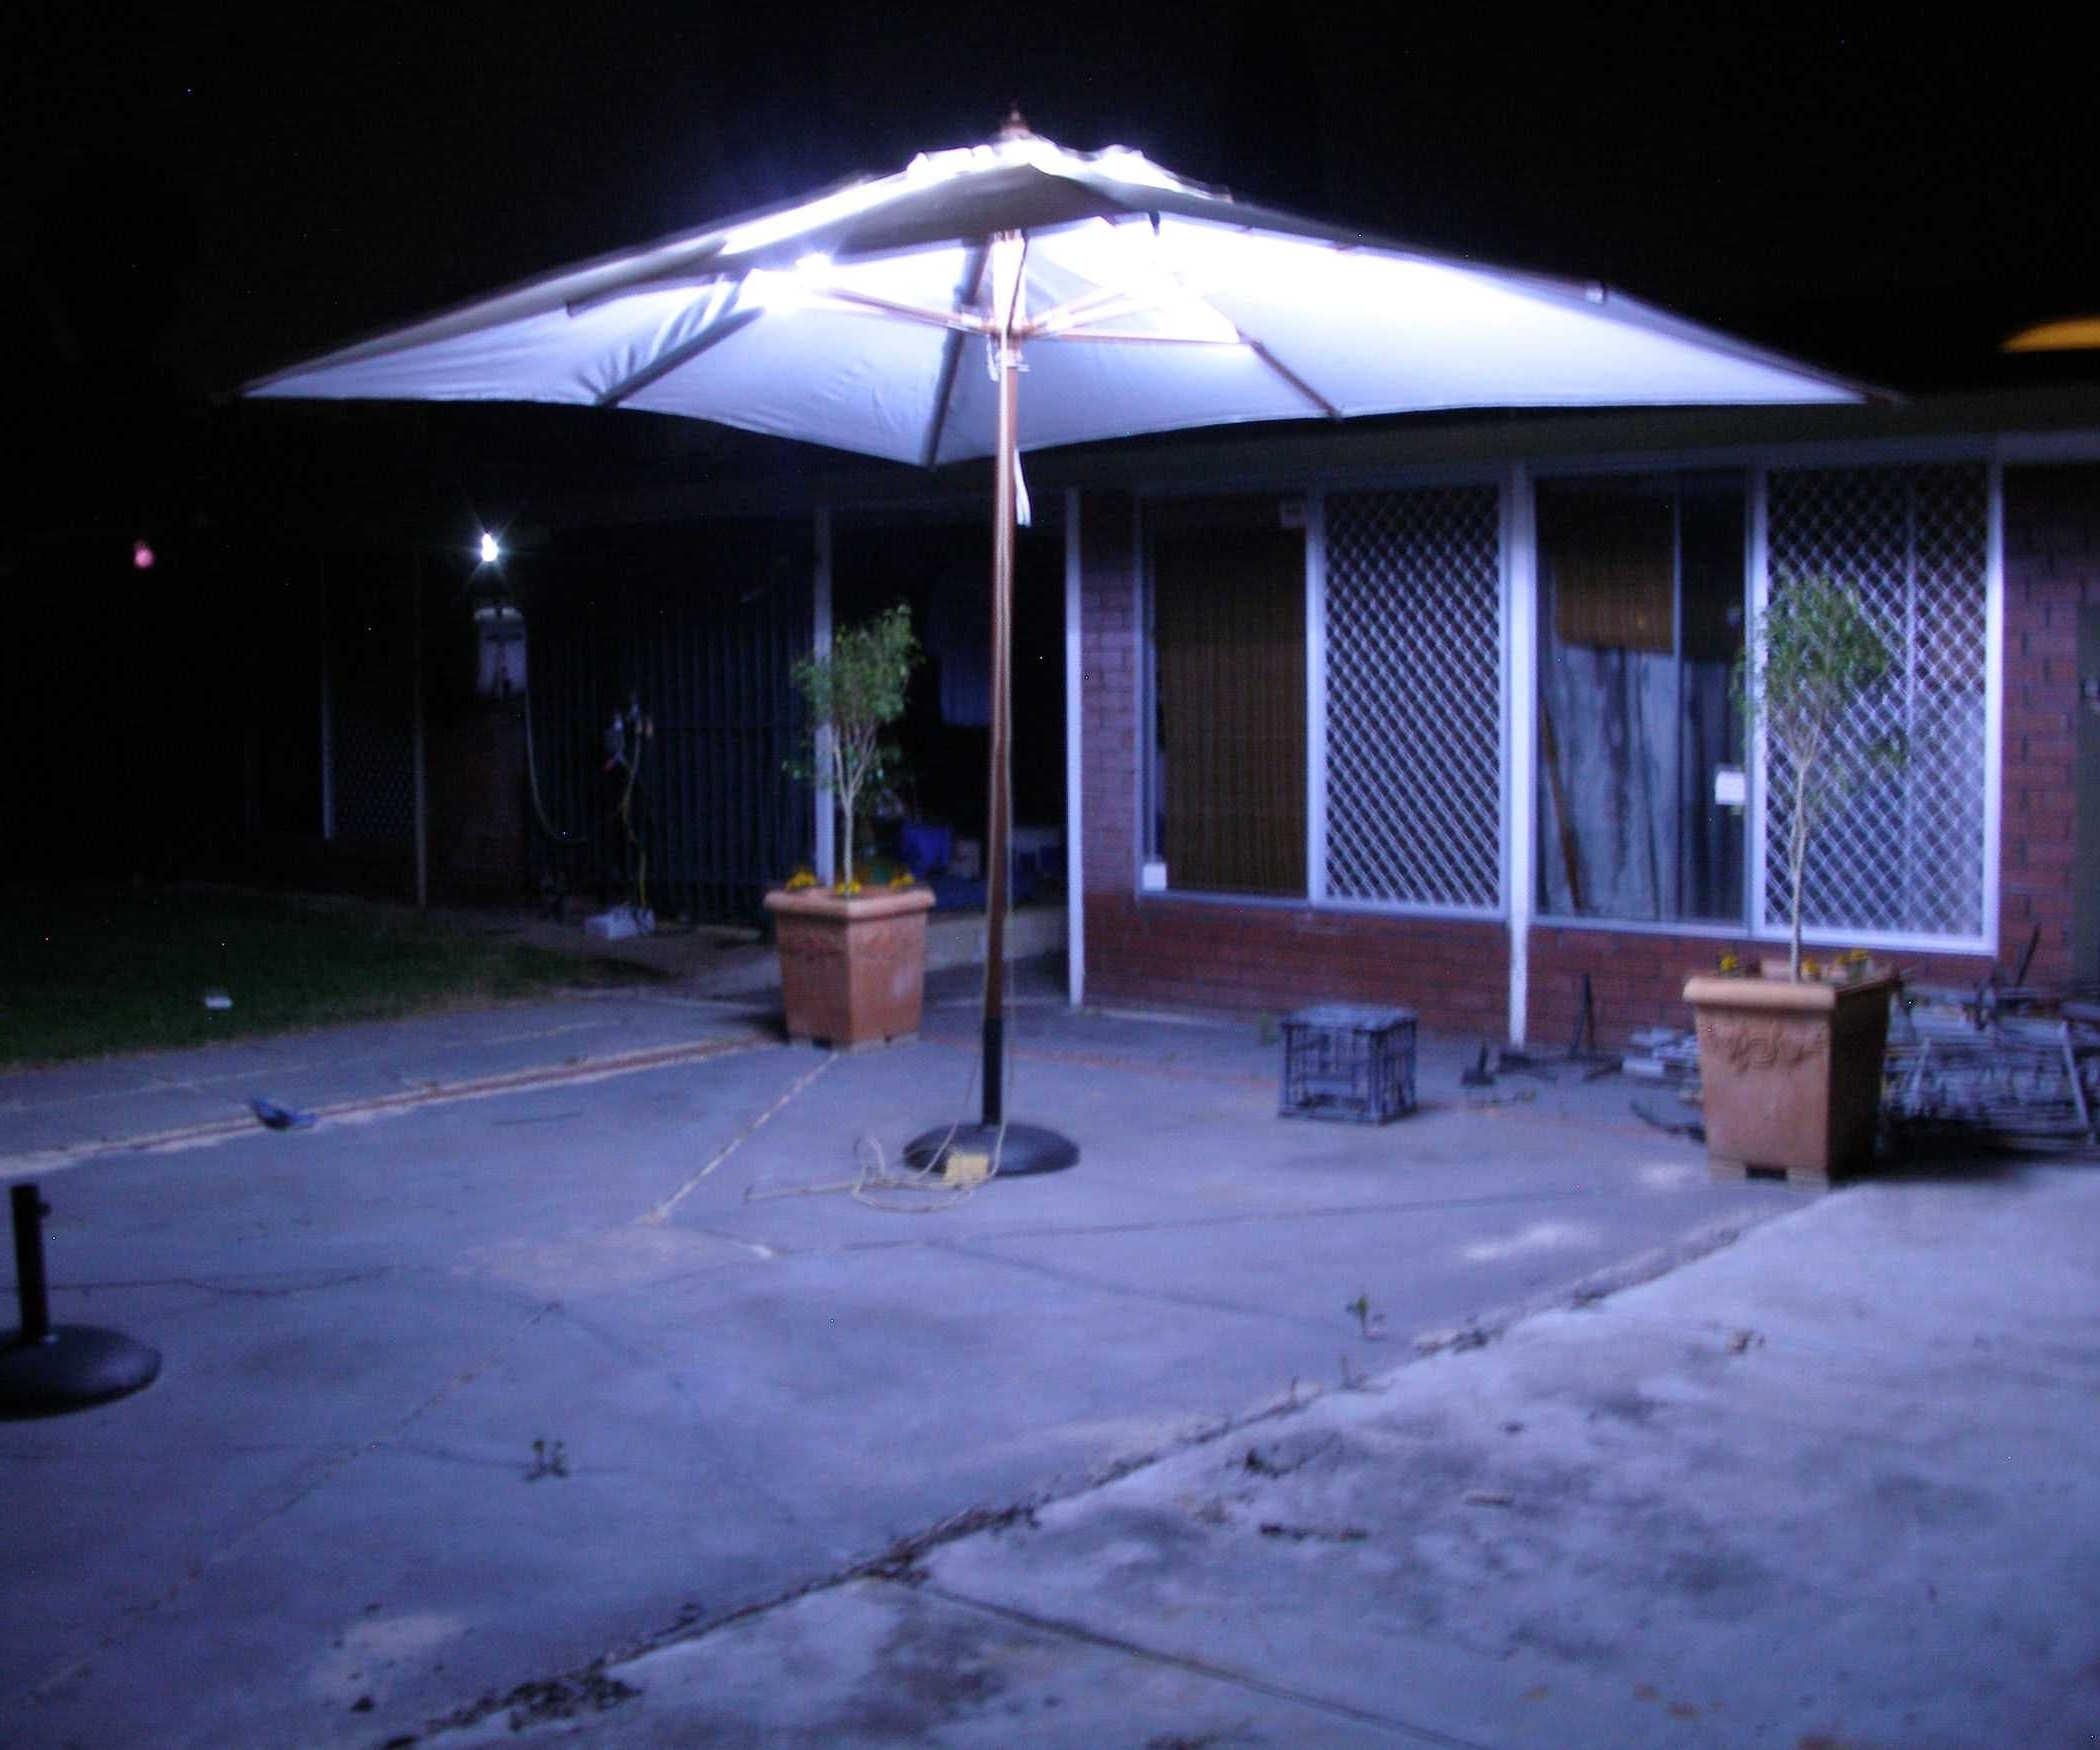 Lighted Umbrellas For Patio With Regard To Most Recent Incredible Lighted Umbrella For Patio Collection Including Outdoor (View 16 of 20)